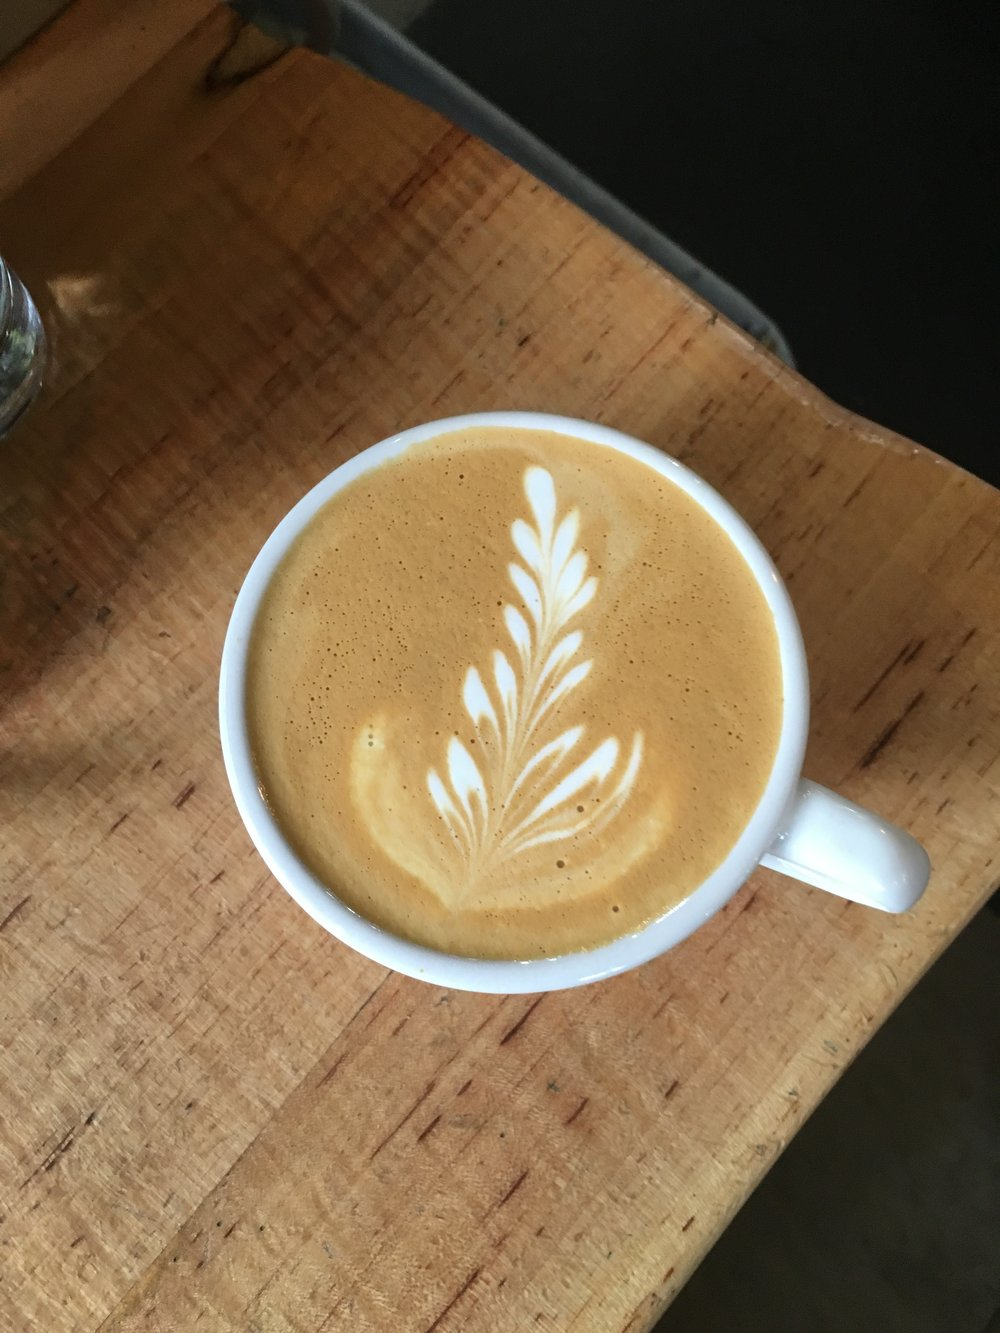 One of my first actually presentable latte art drinks!